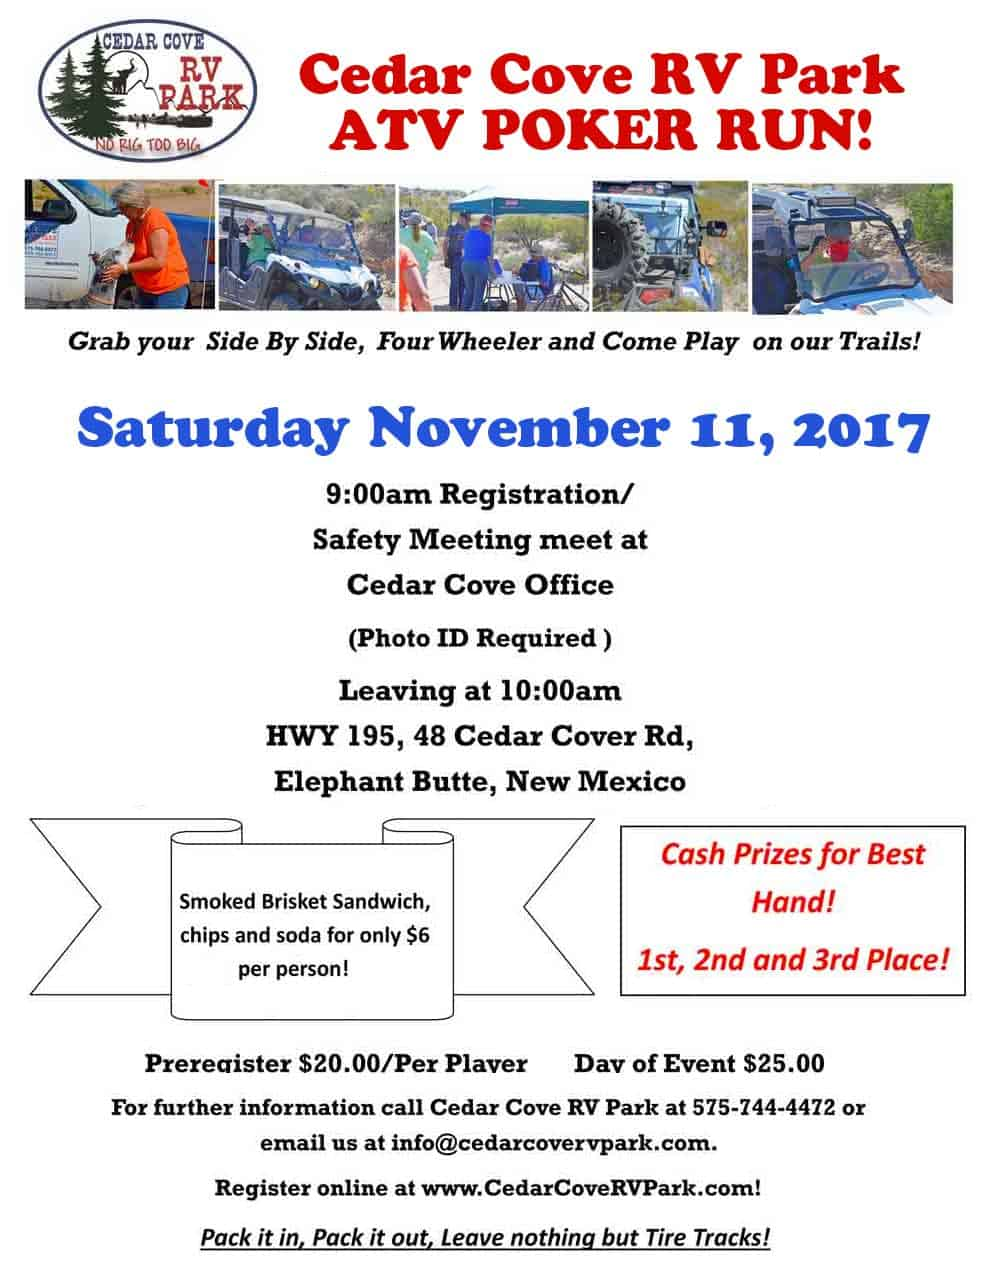 ATV Poker Run November 11, 2017, Cedar Cove RV Park